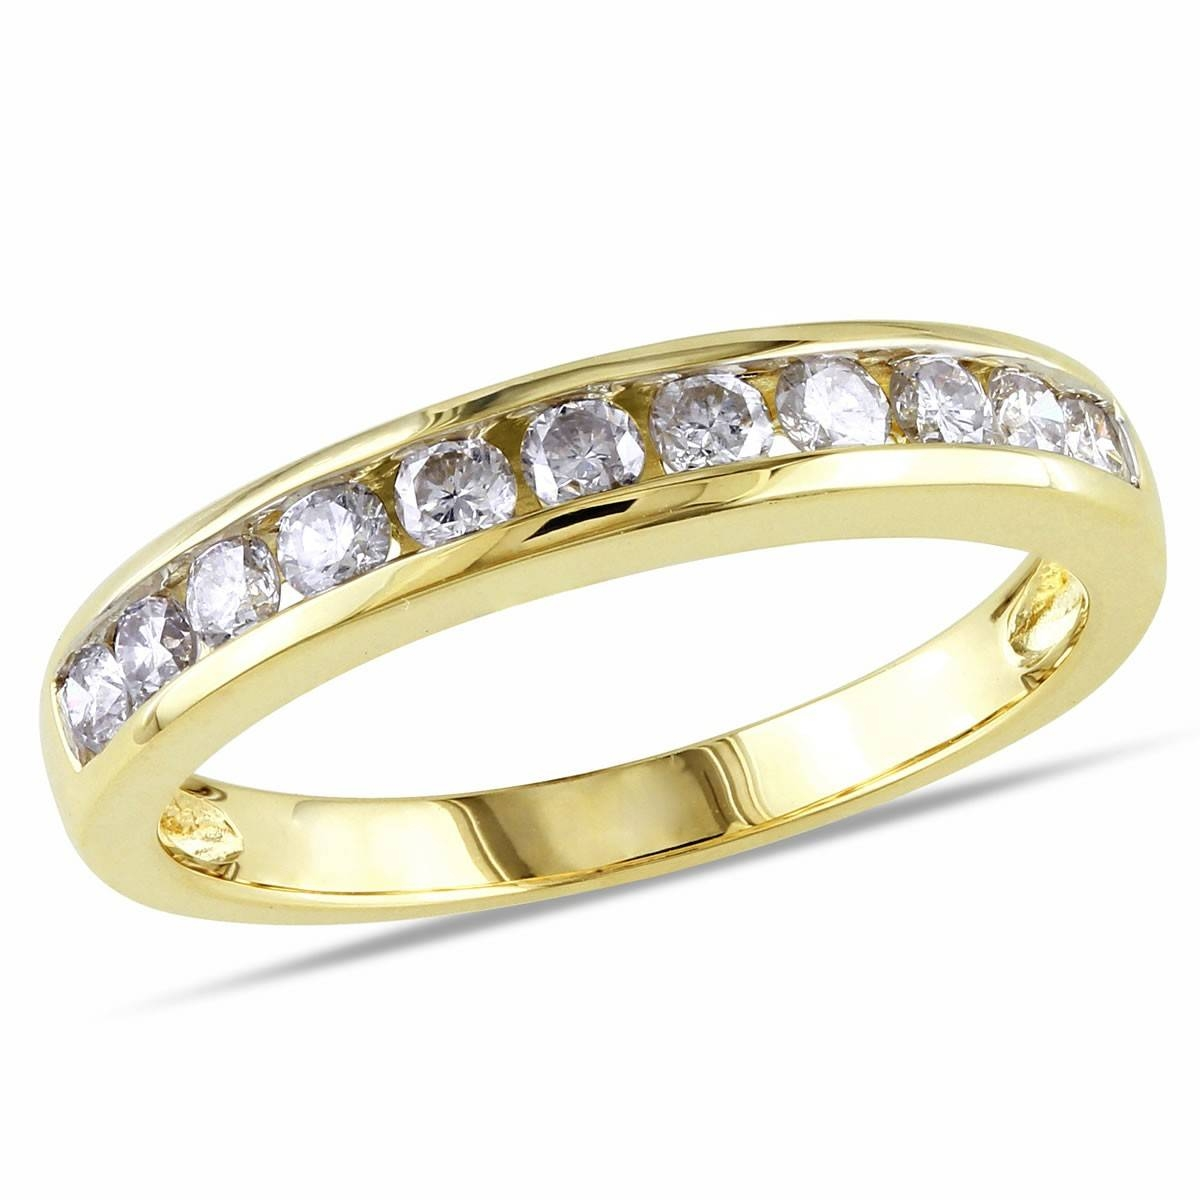 10K Yellow Gold 1/2 Ct Diamond Tw Eternity Anniversary Ring, Gh I2 For Best And Newest Wedding Anniversary Rings (View 1 of 25)